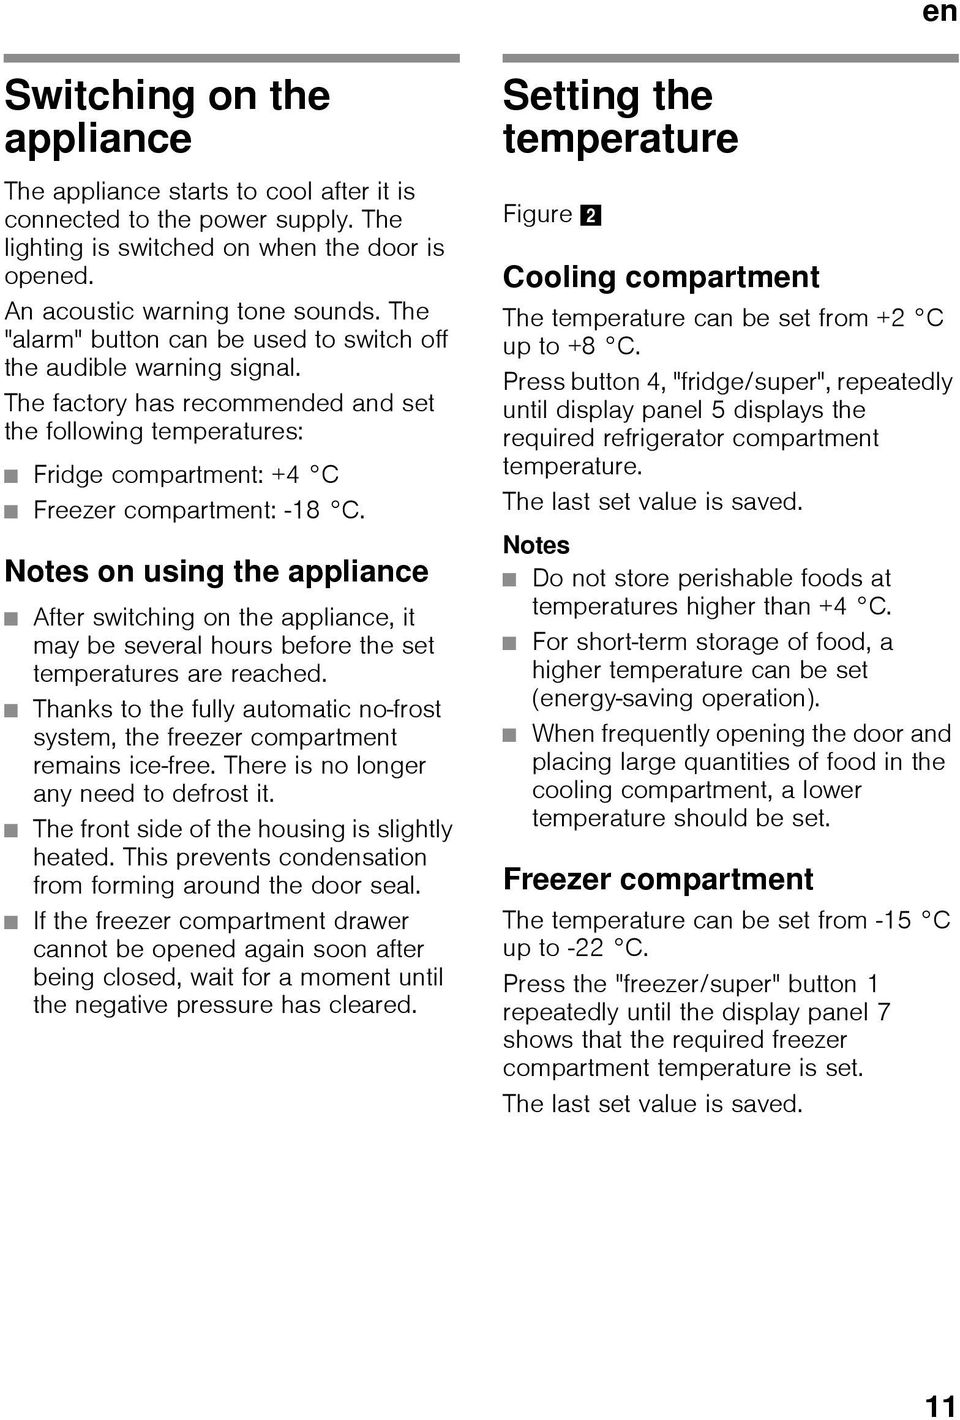 Notes on using the appliance After switching on the appliance, it may be several hours before the set temperatures are reached.